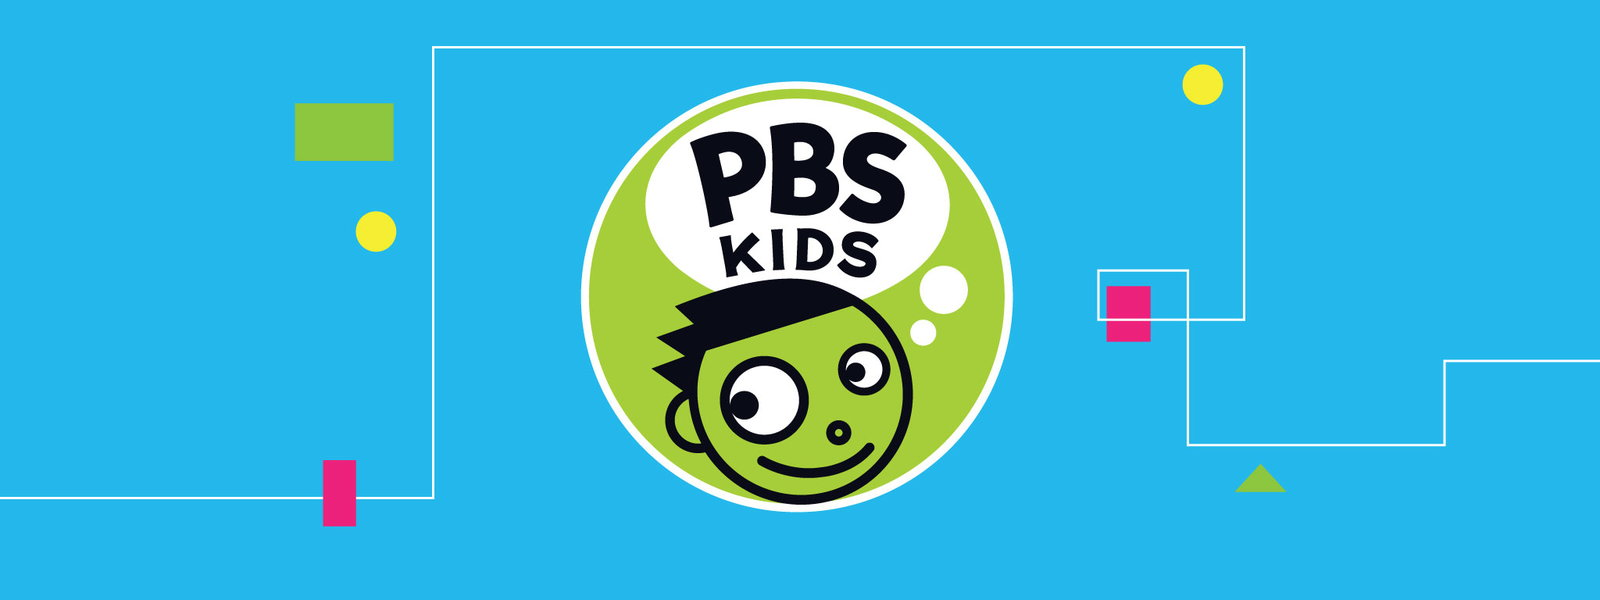 PBS Kids channel with on-demand service